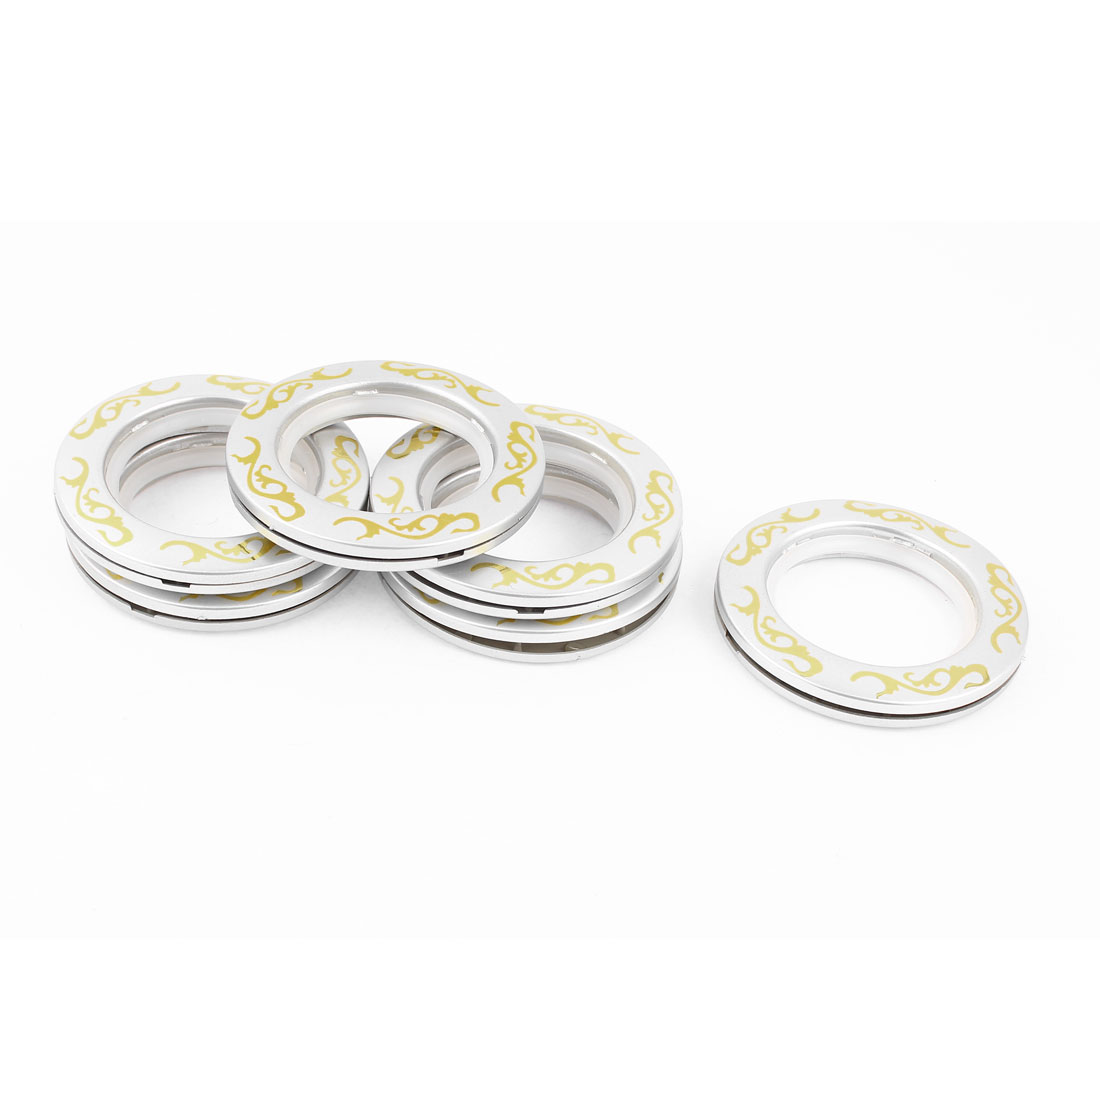 Household Decor Window Curtain Rings Silver Tone 44mm Inner Dia 6 Pcs